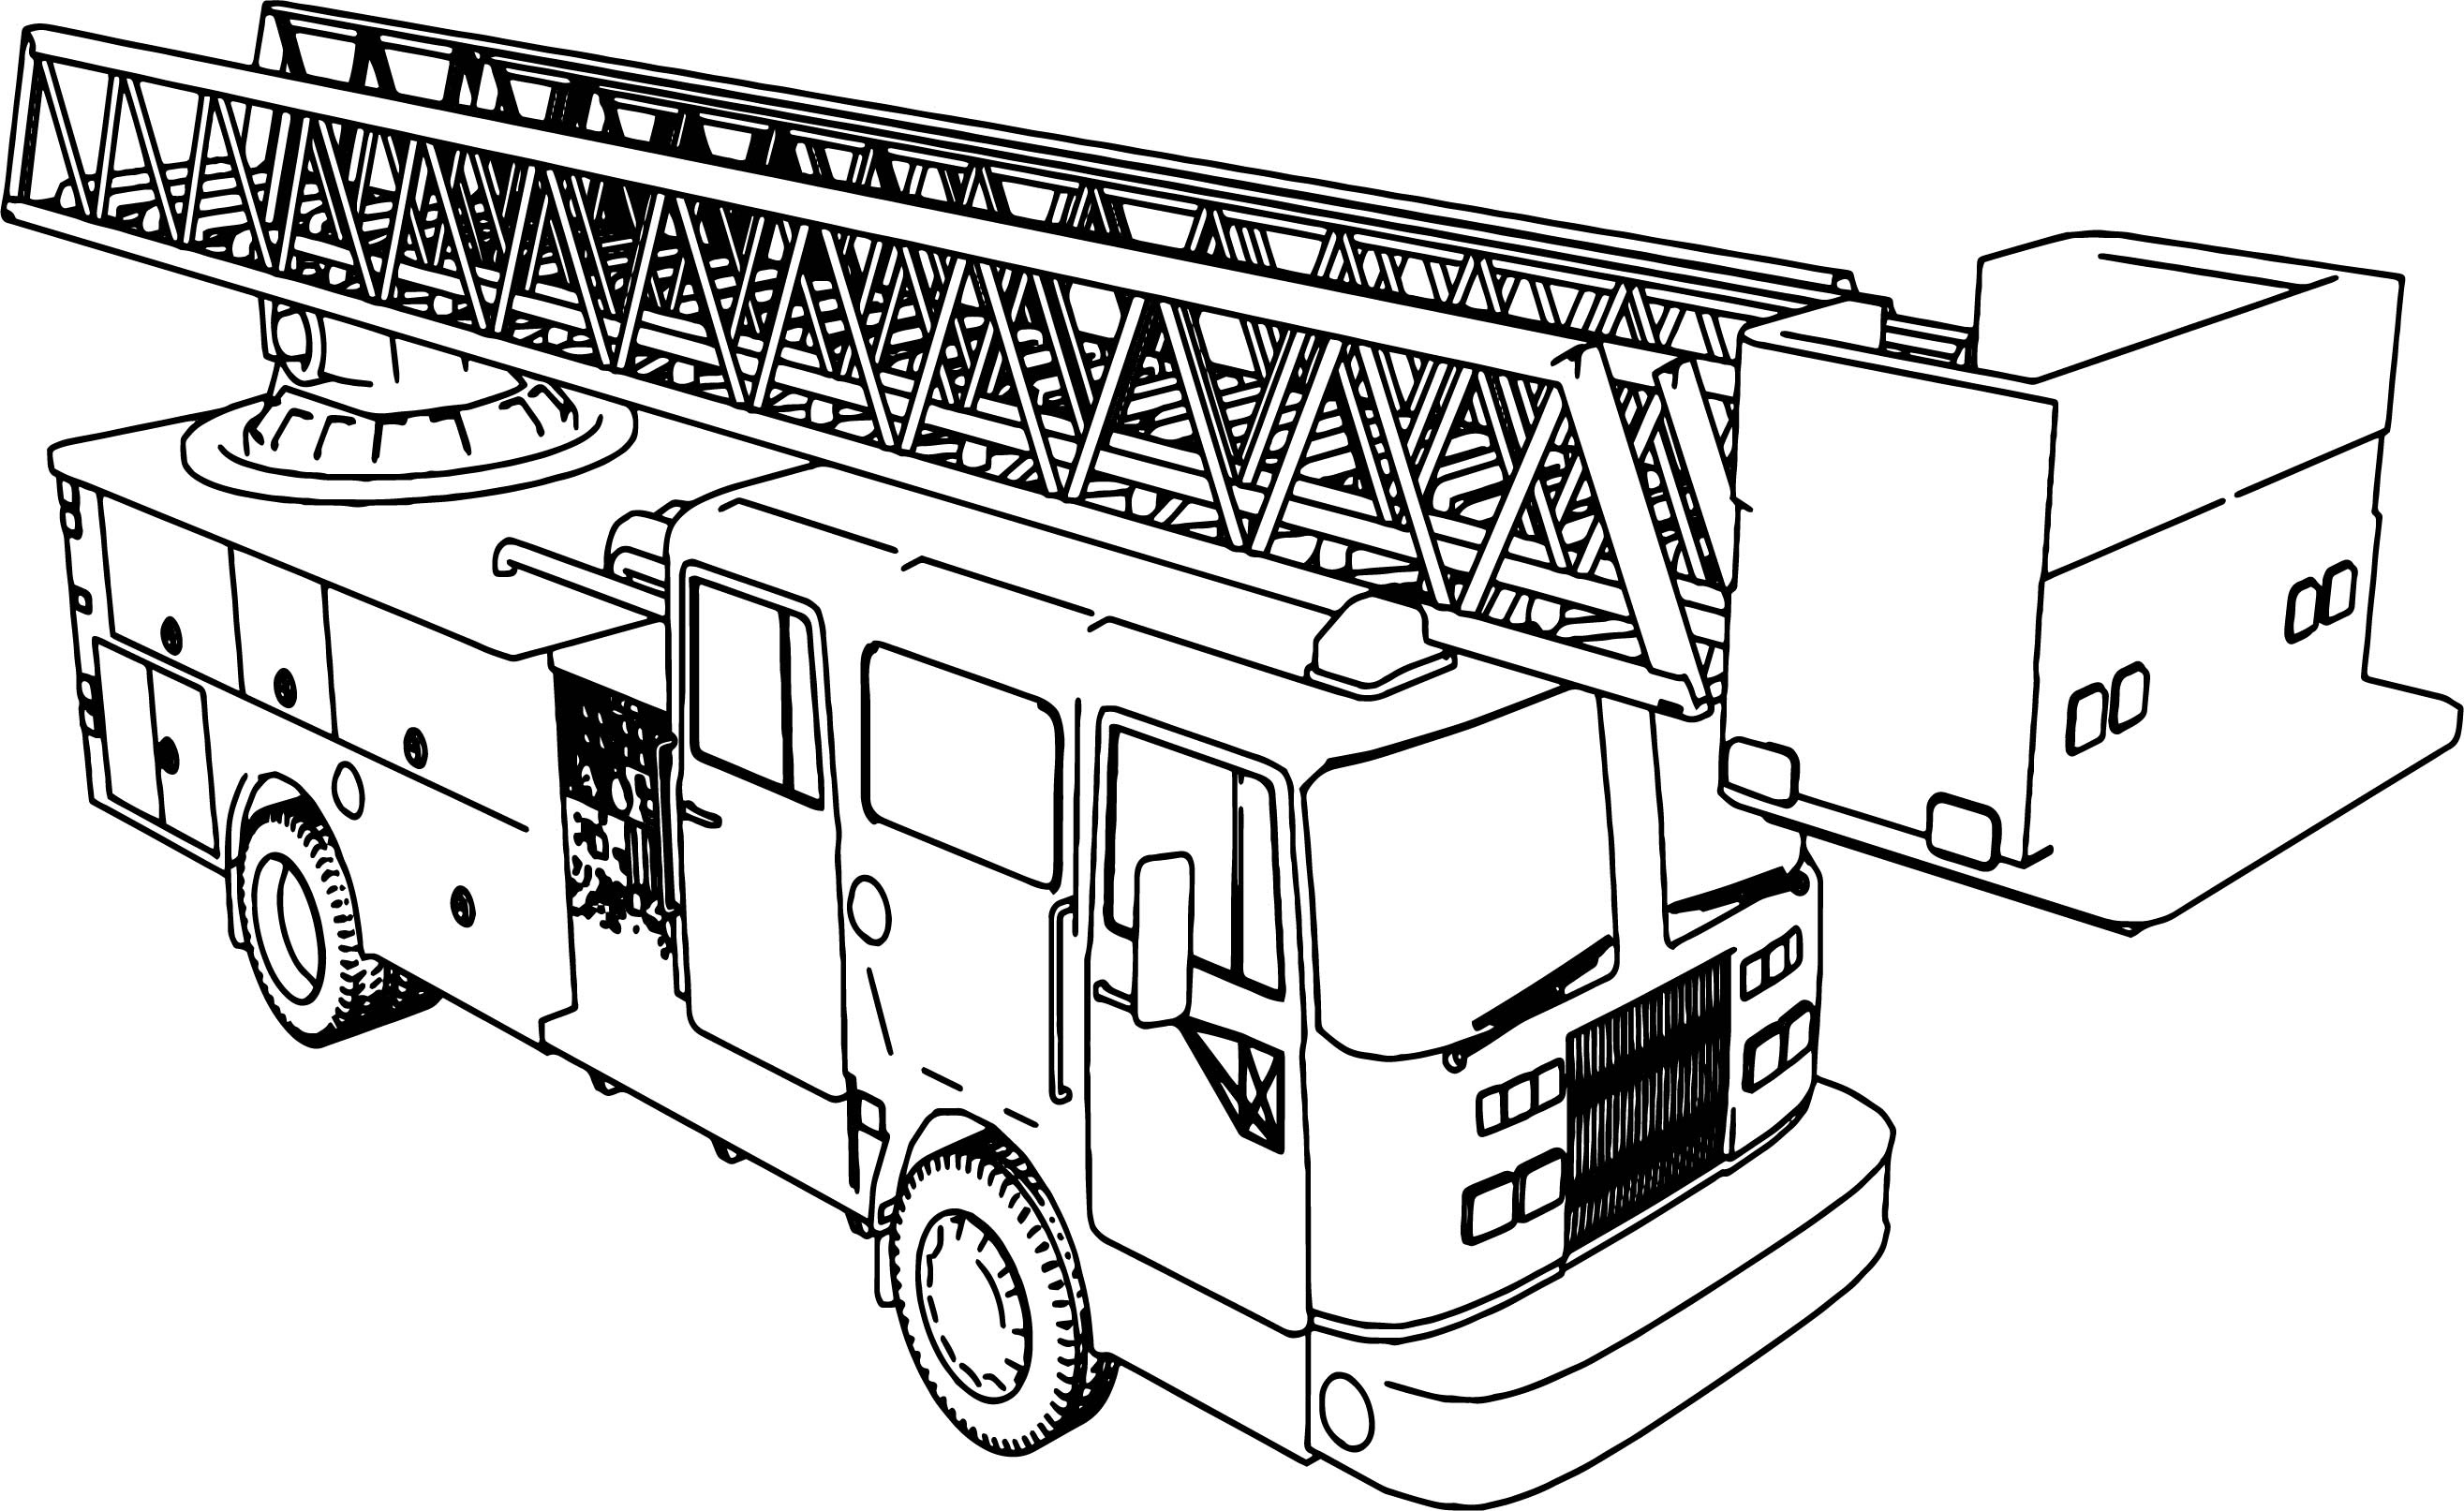 Long Fire Truck Coloring Page | Wecoloringpage.com